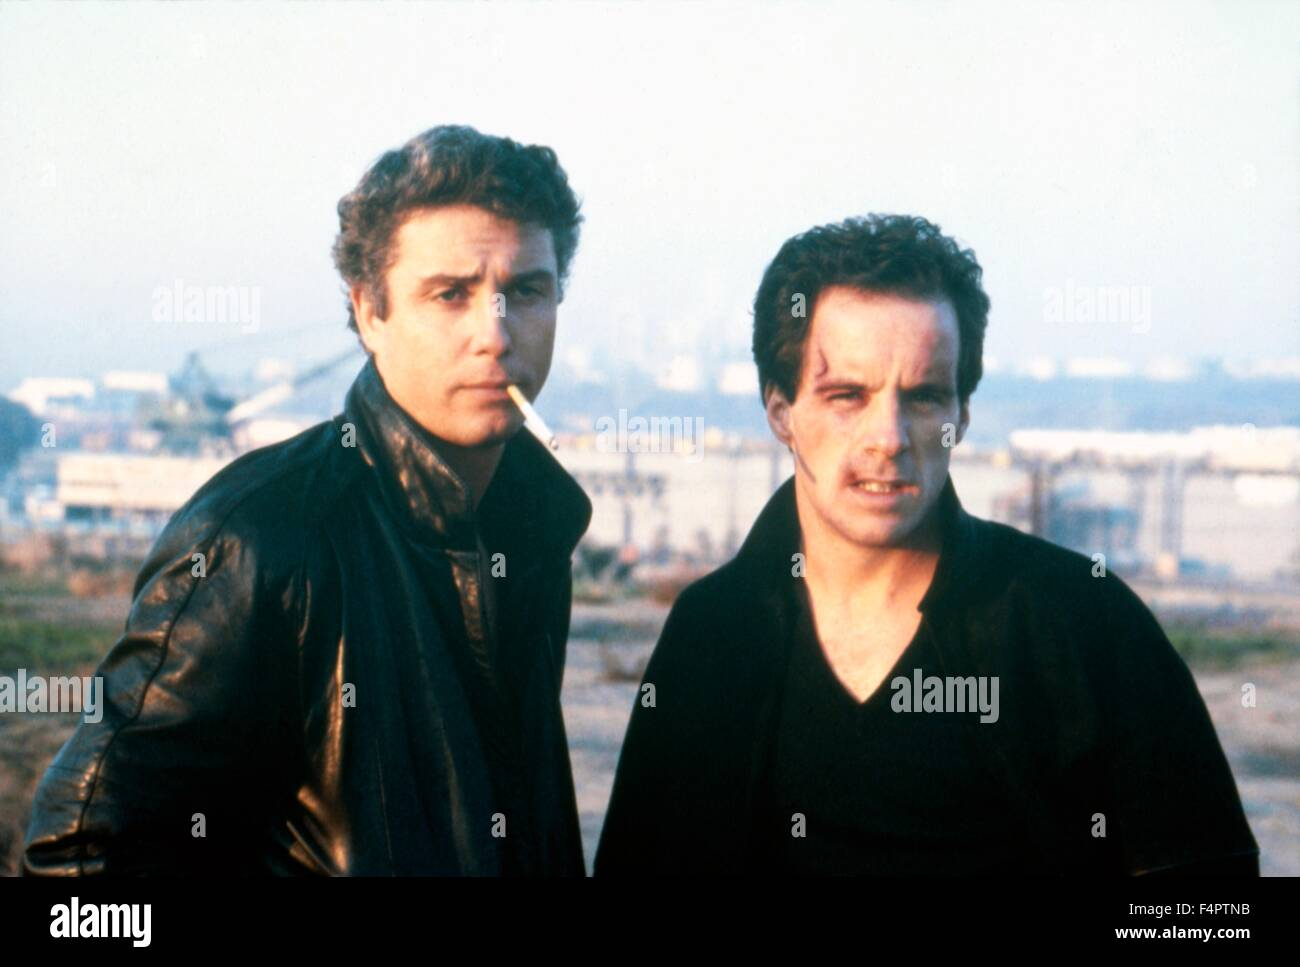 john pankow law and order